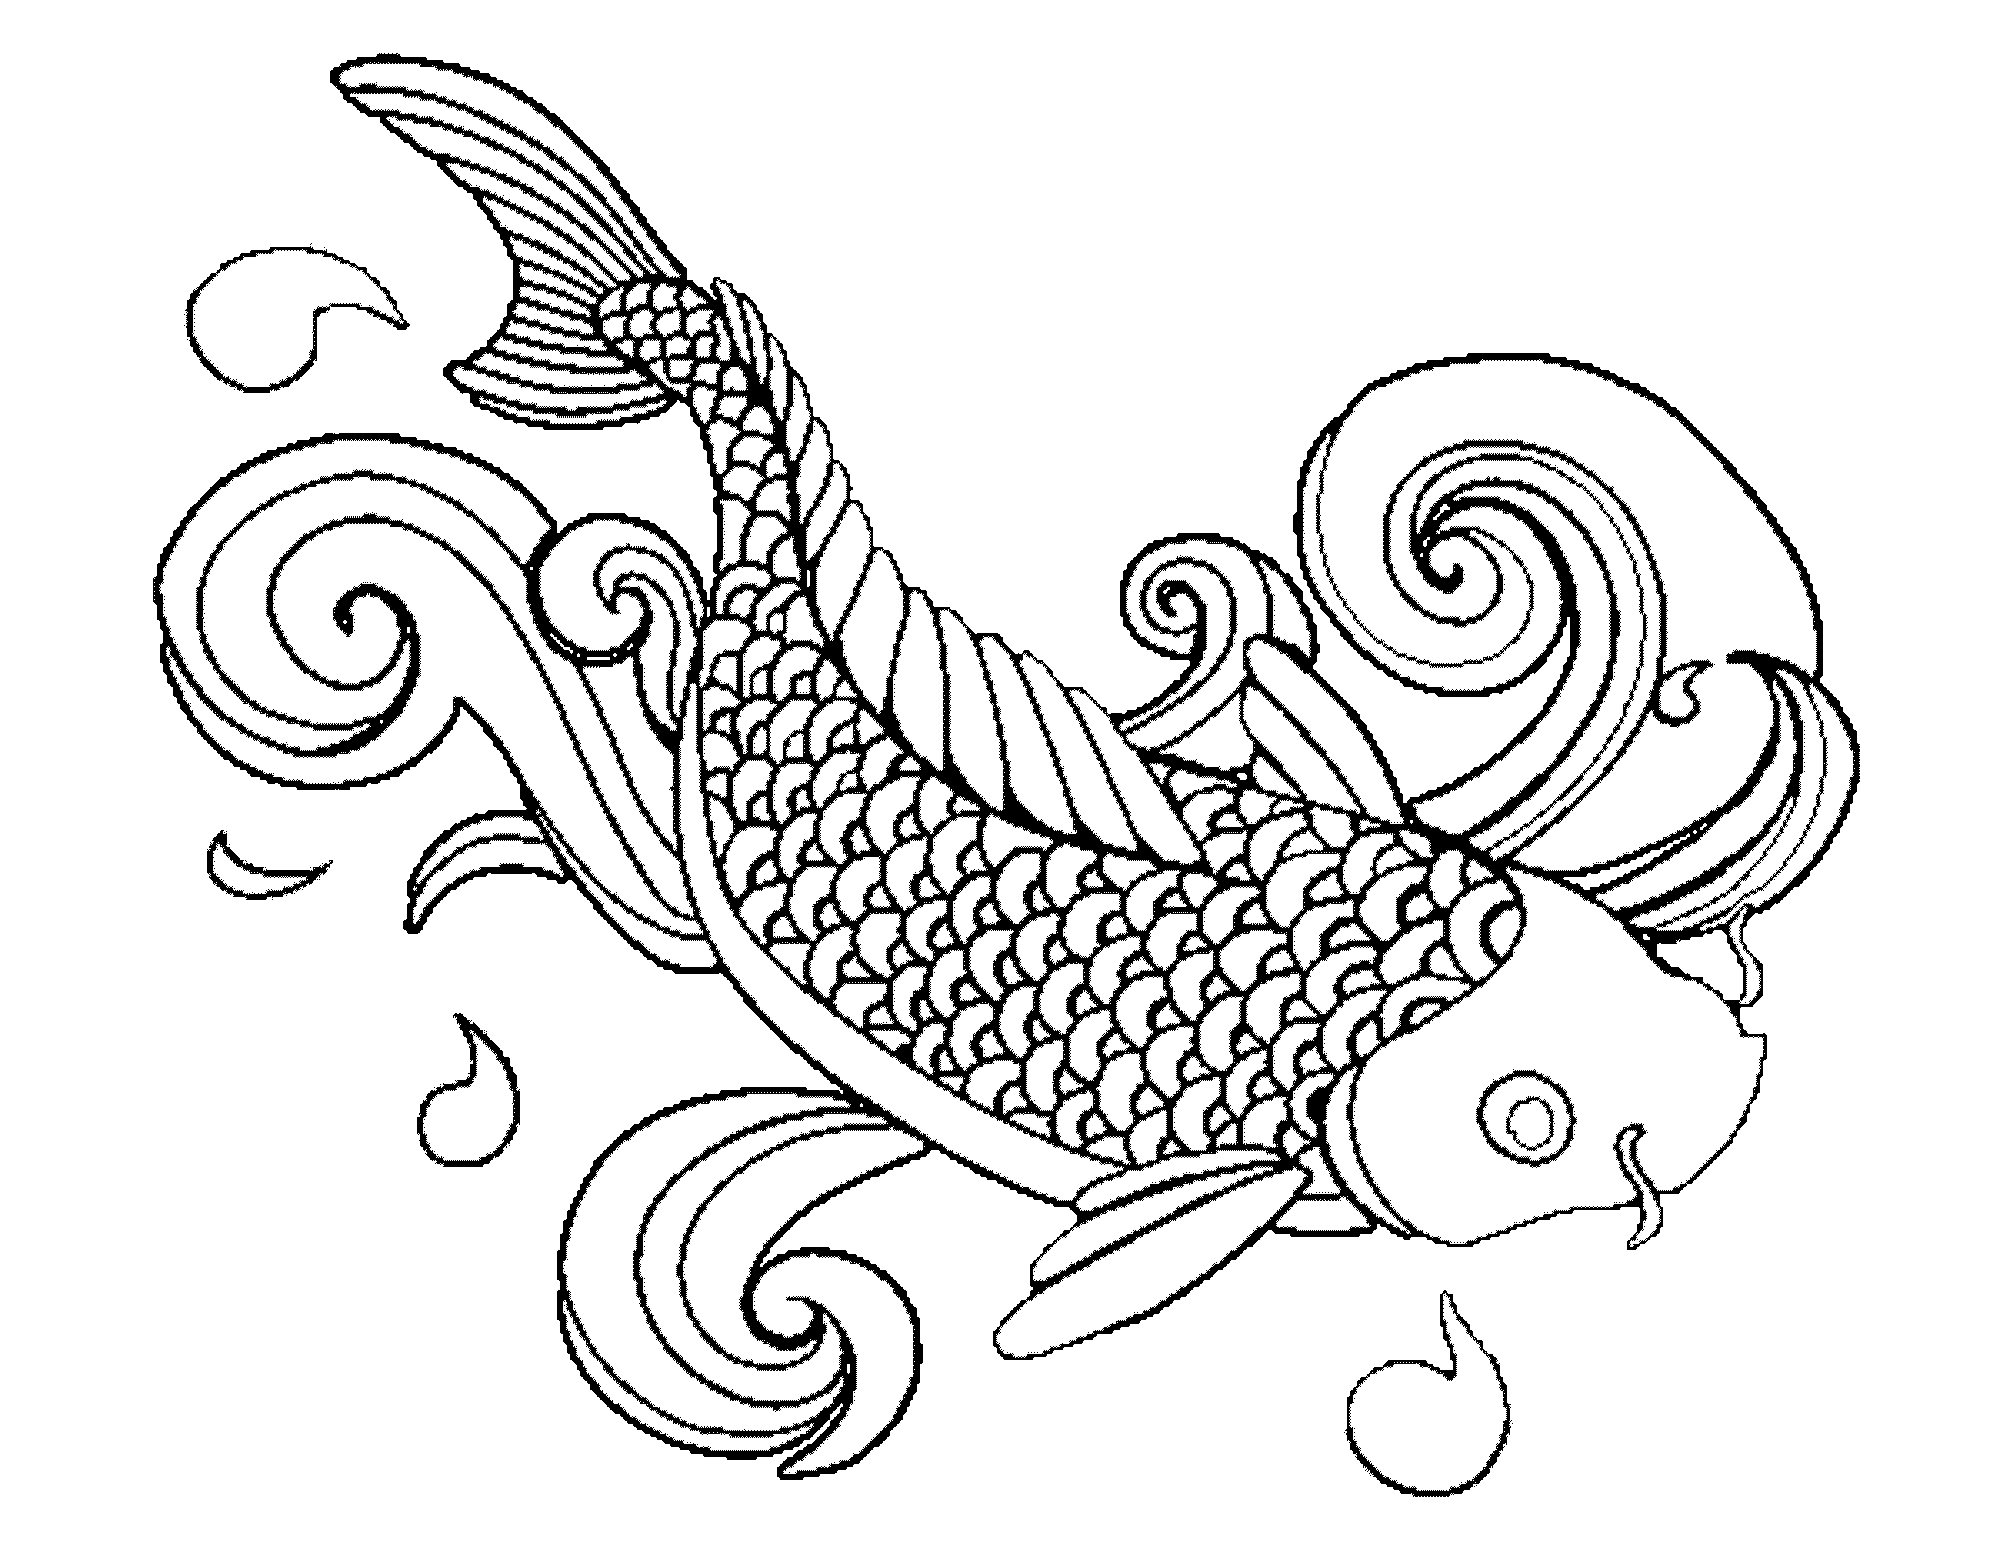 Koi Fish Drawing Outline at GetDrawings.com | Free for personal use ...